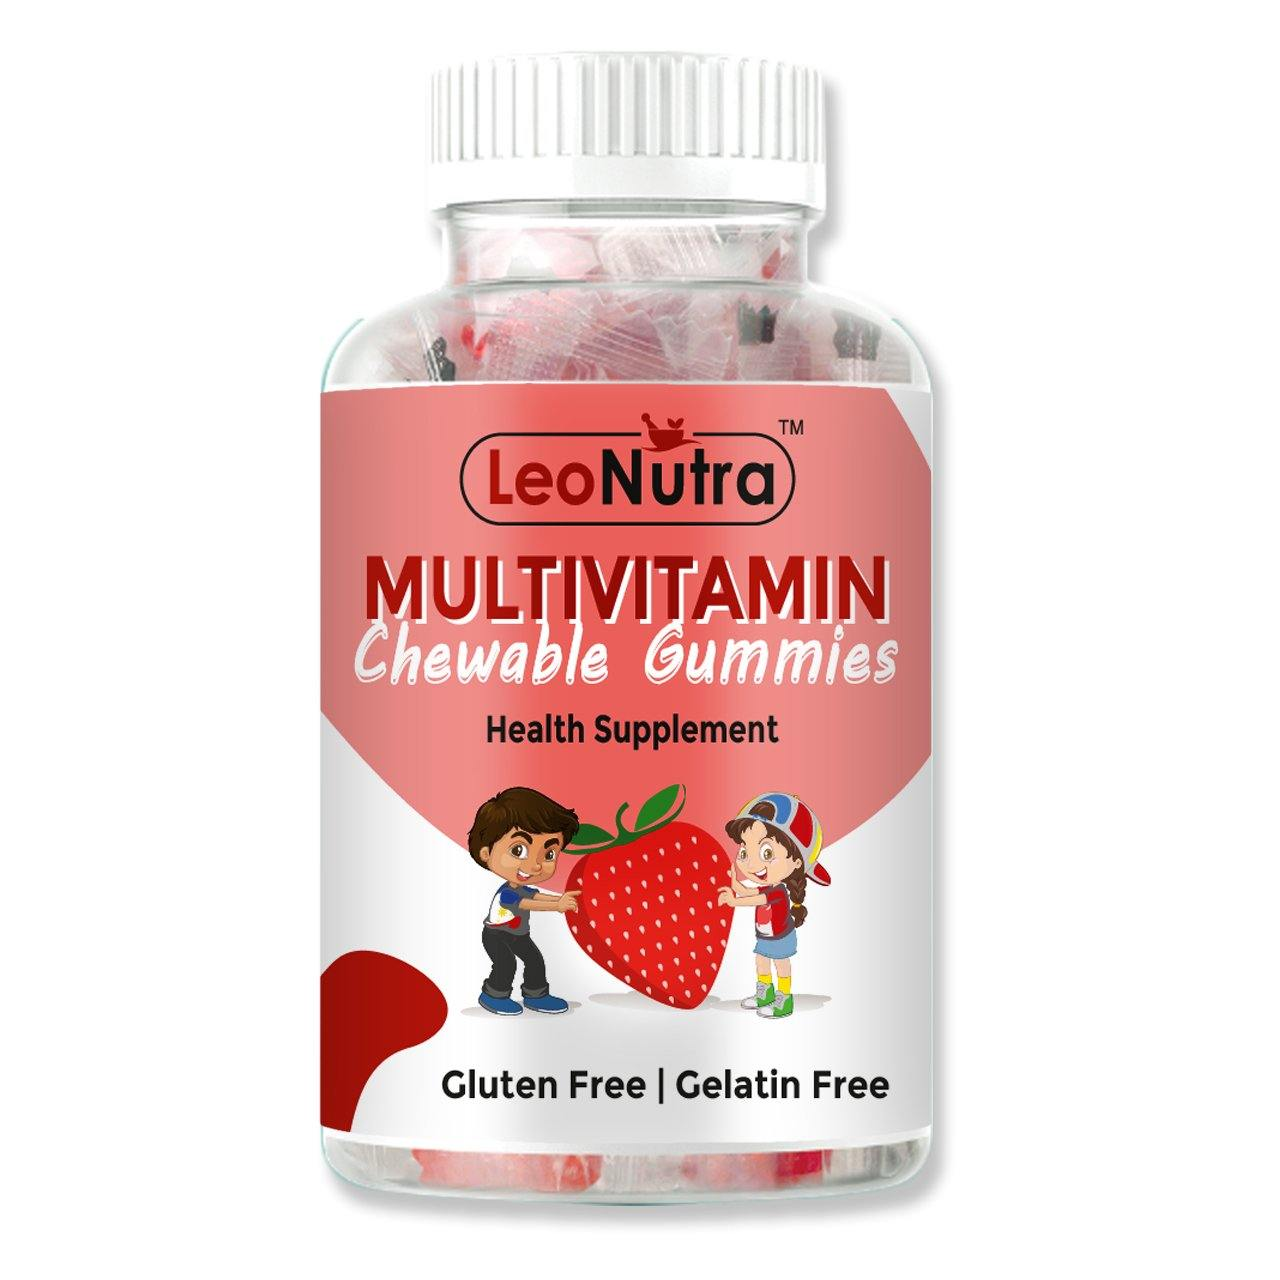 LeoNutra Multivitamin Chewable Gummies for Kids with 16 Vitamins and Minerals for Growth and Development - 30 Gummies